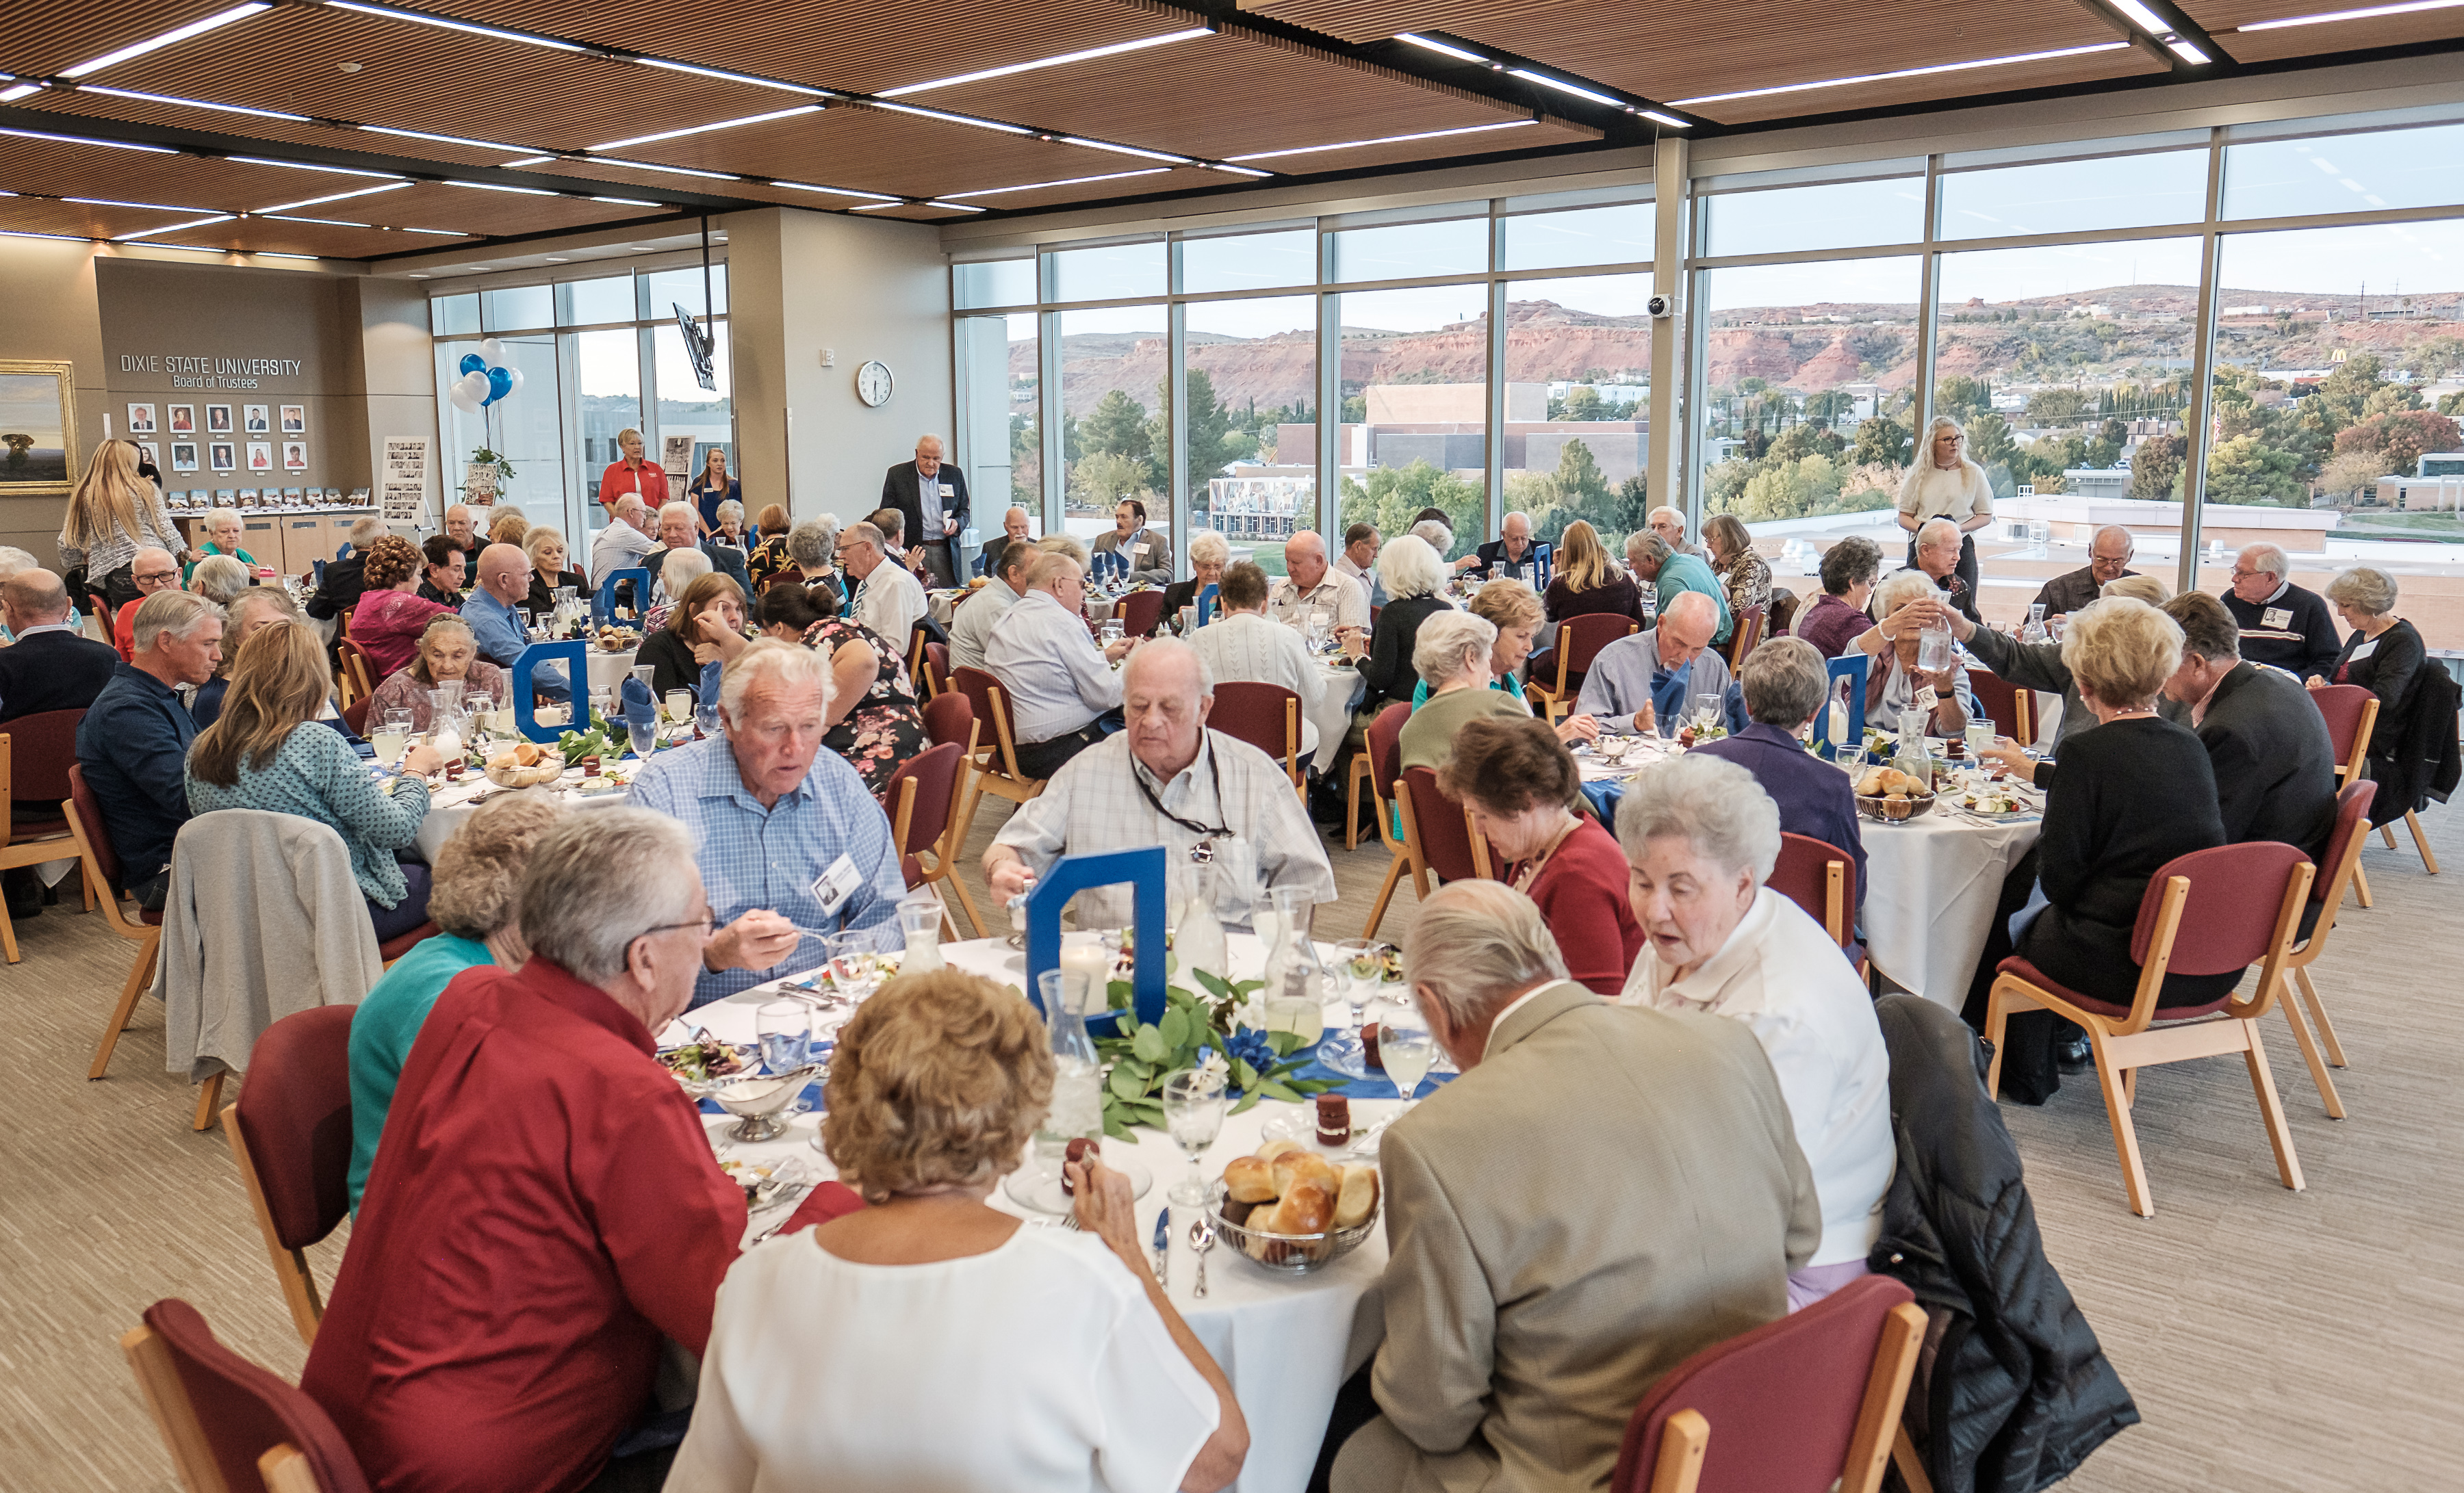 Members and guests of the Dixie High School class of 1959 eat dinner during a reunion held in the Jeffrey R. Holland Centennial Commons building on the campus of Dixie State University in St. George on Thursday, Oct. 24, 2019.